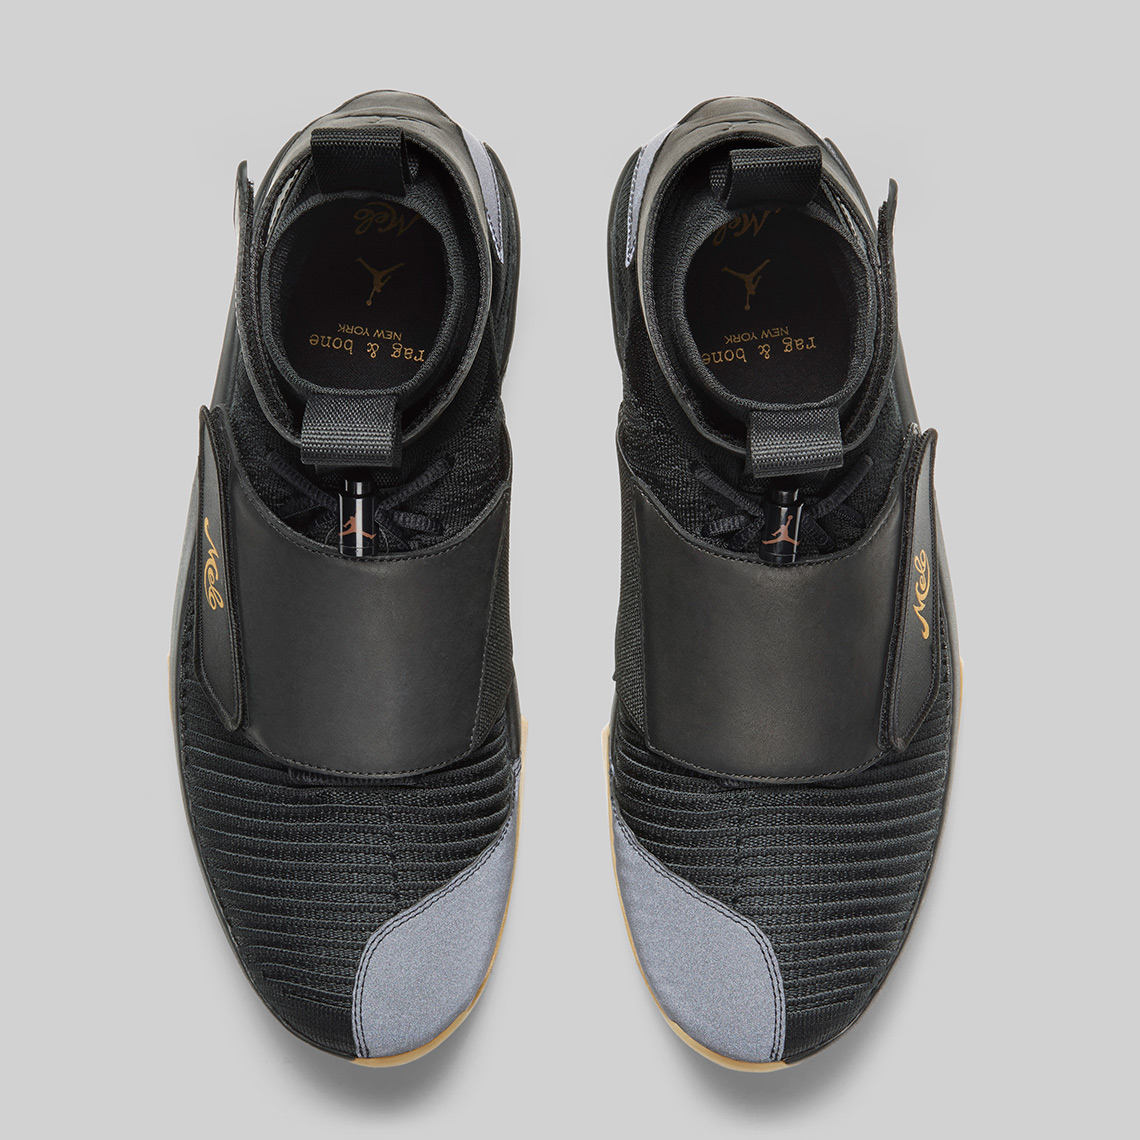 632e421fc1aa08 Carmelo Anthony Rag And Bone Air Jordan 20 Flyknit Release Info ...